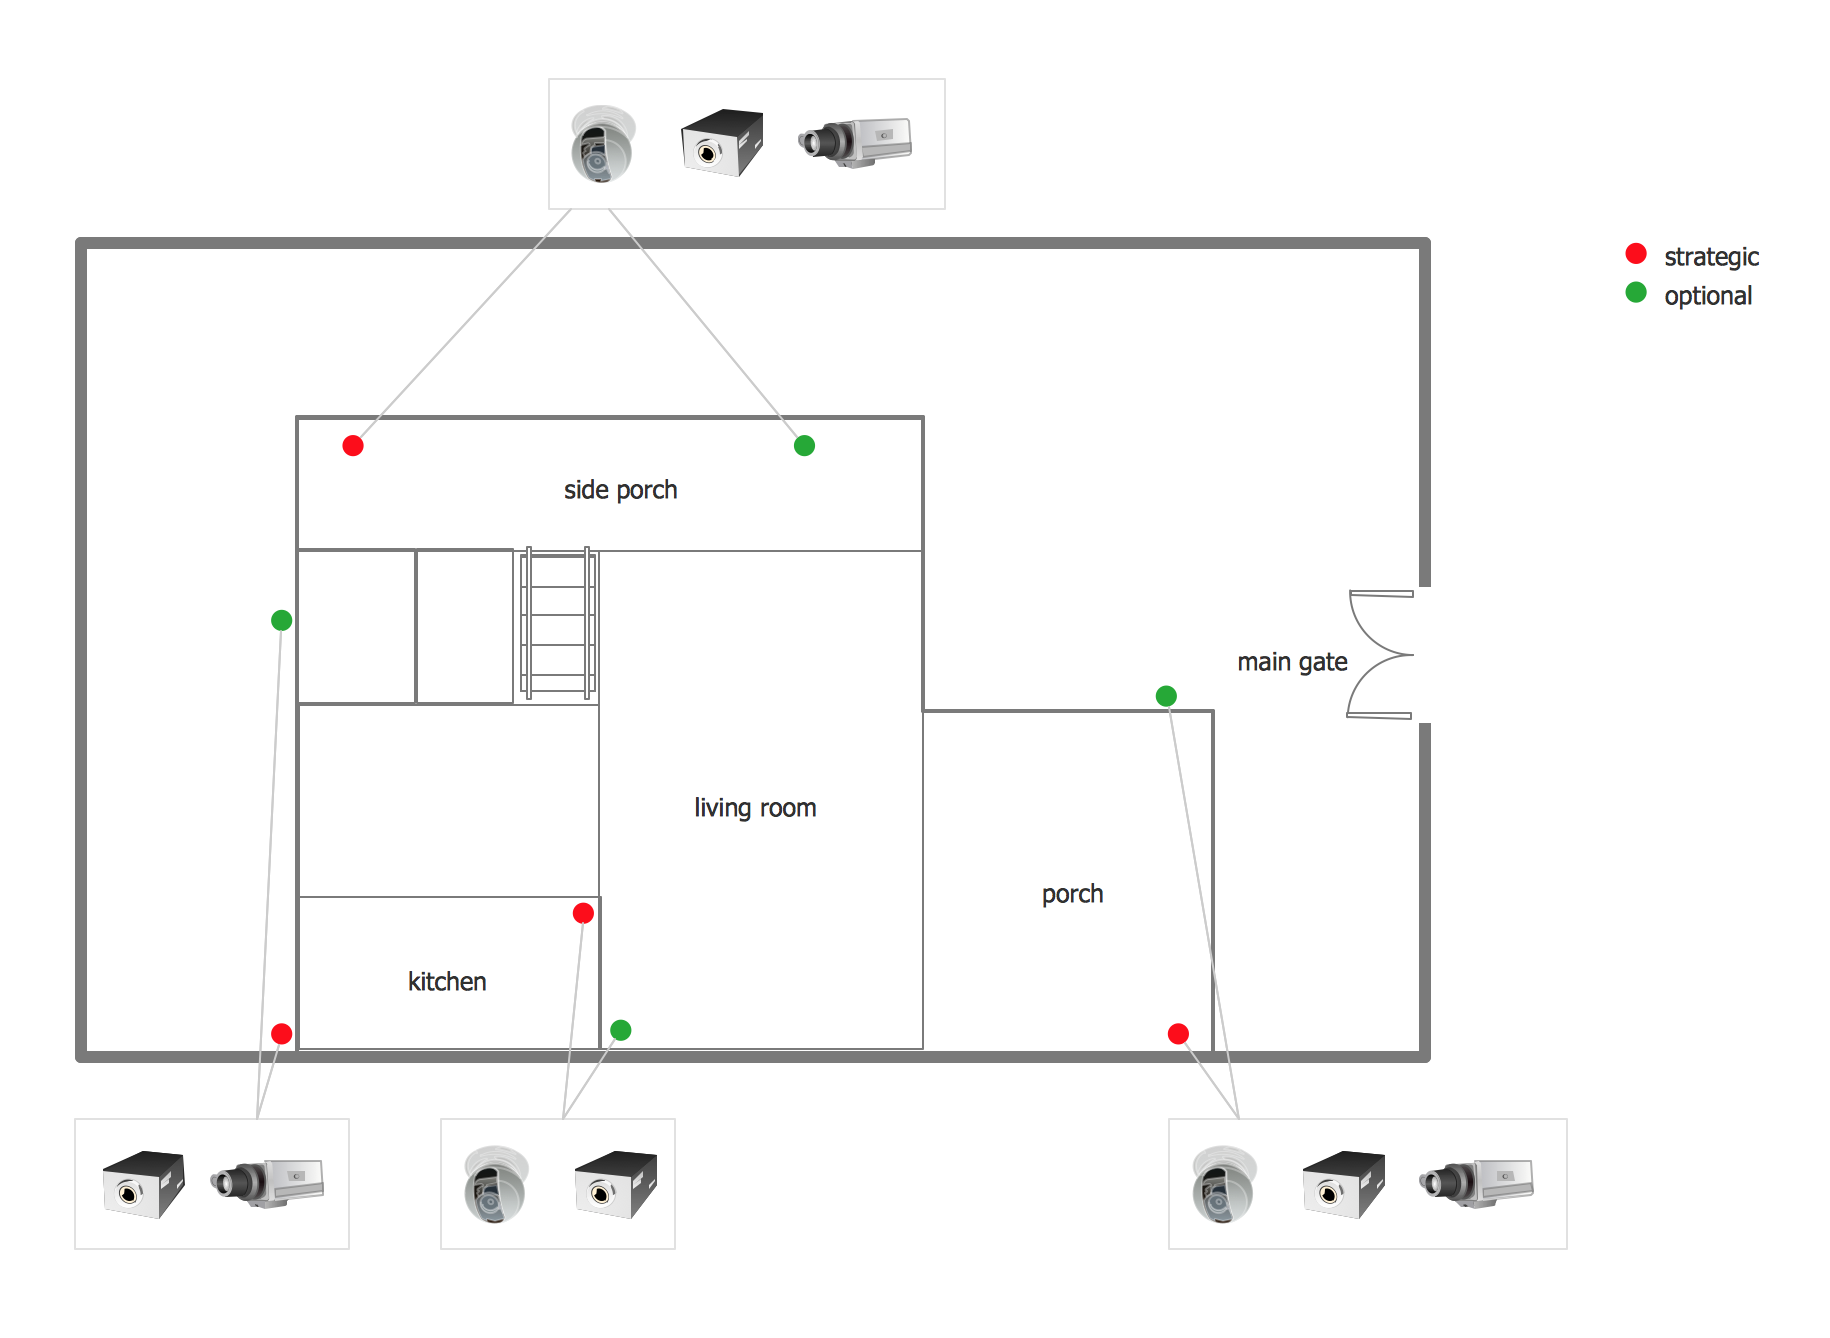 CCTV Network Diagram - Home CCTV system